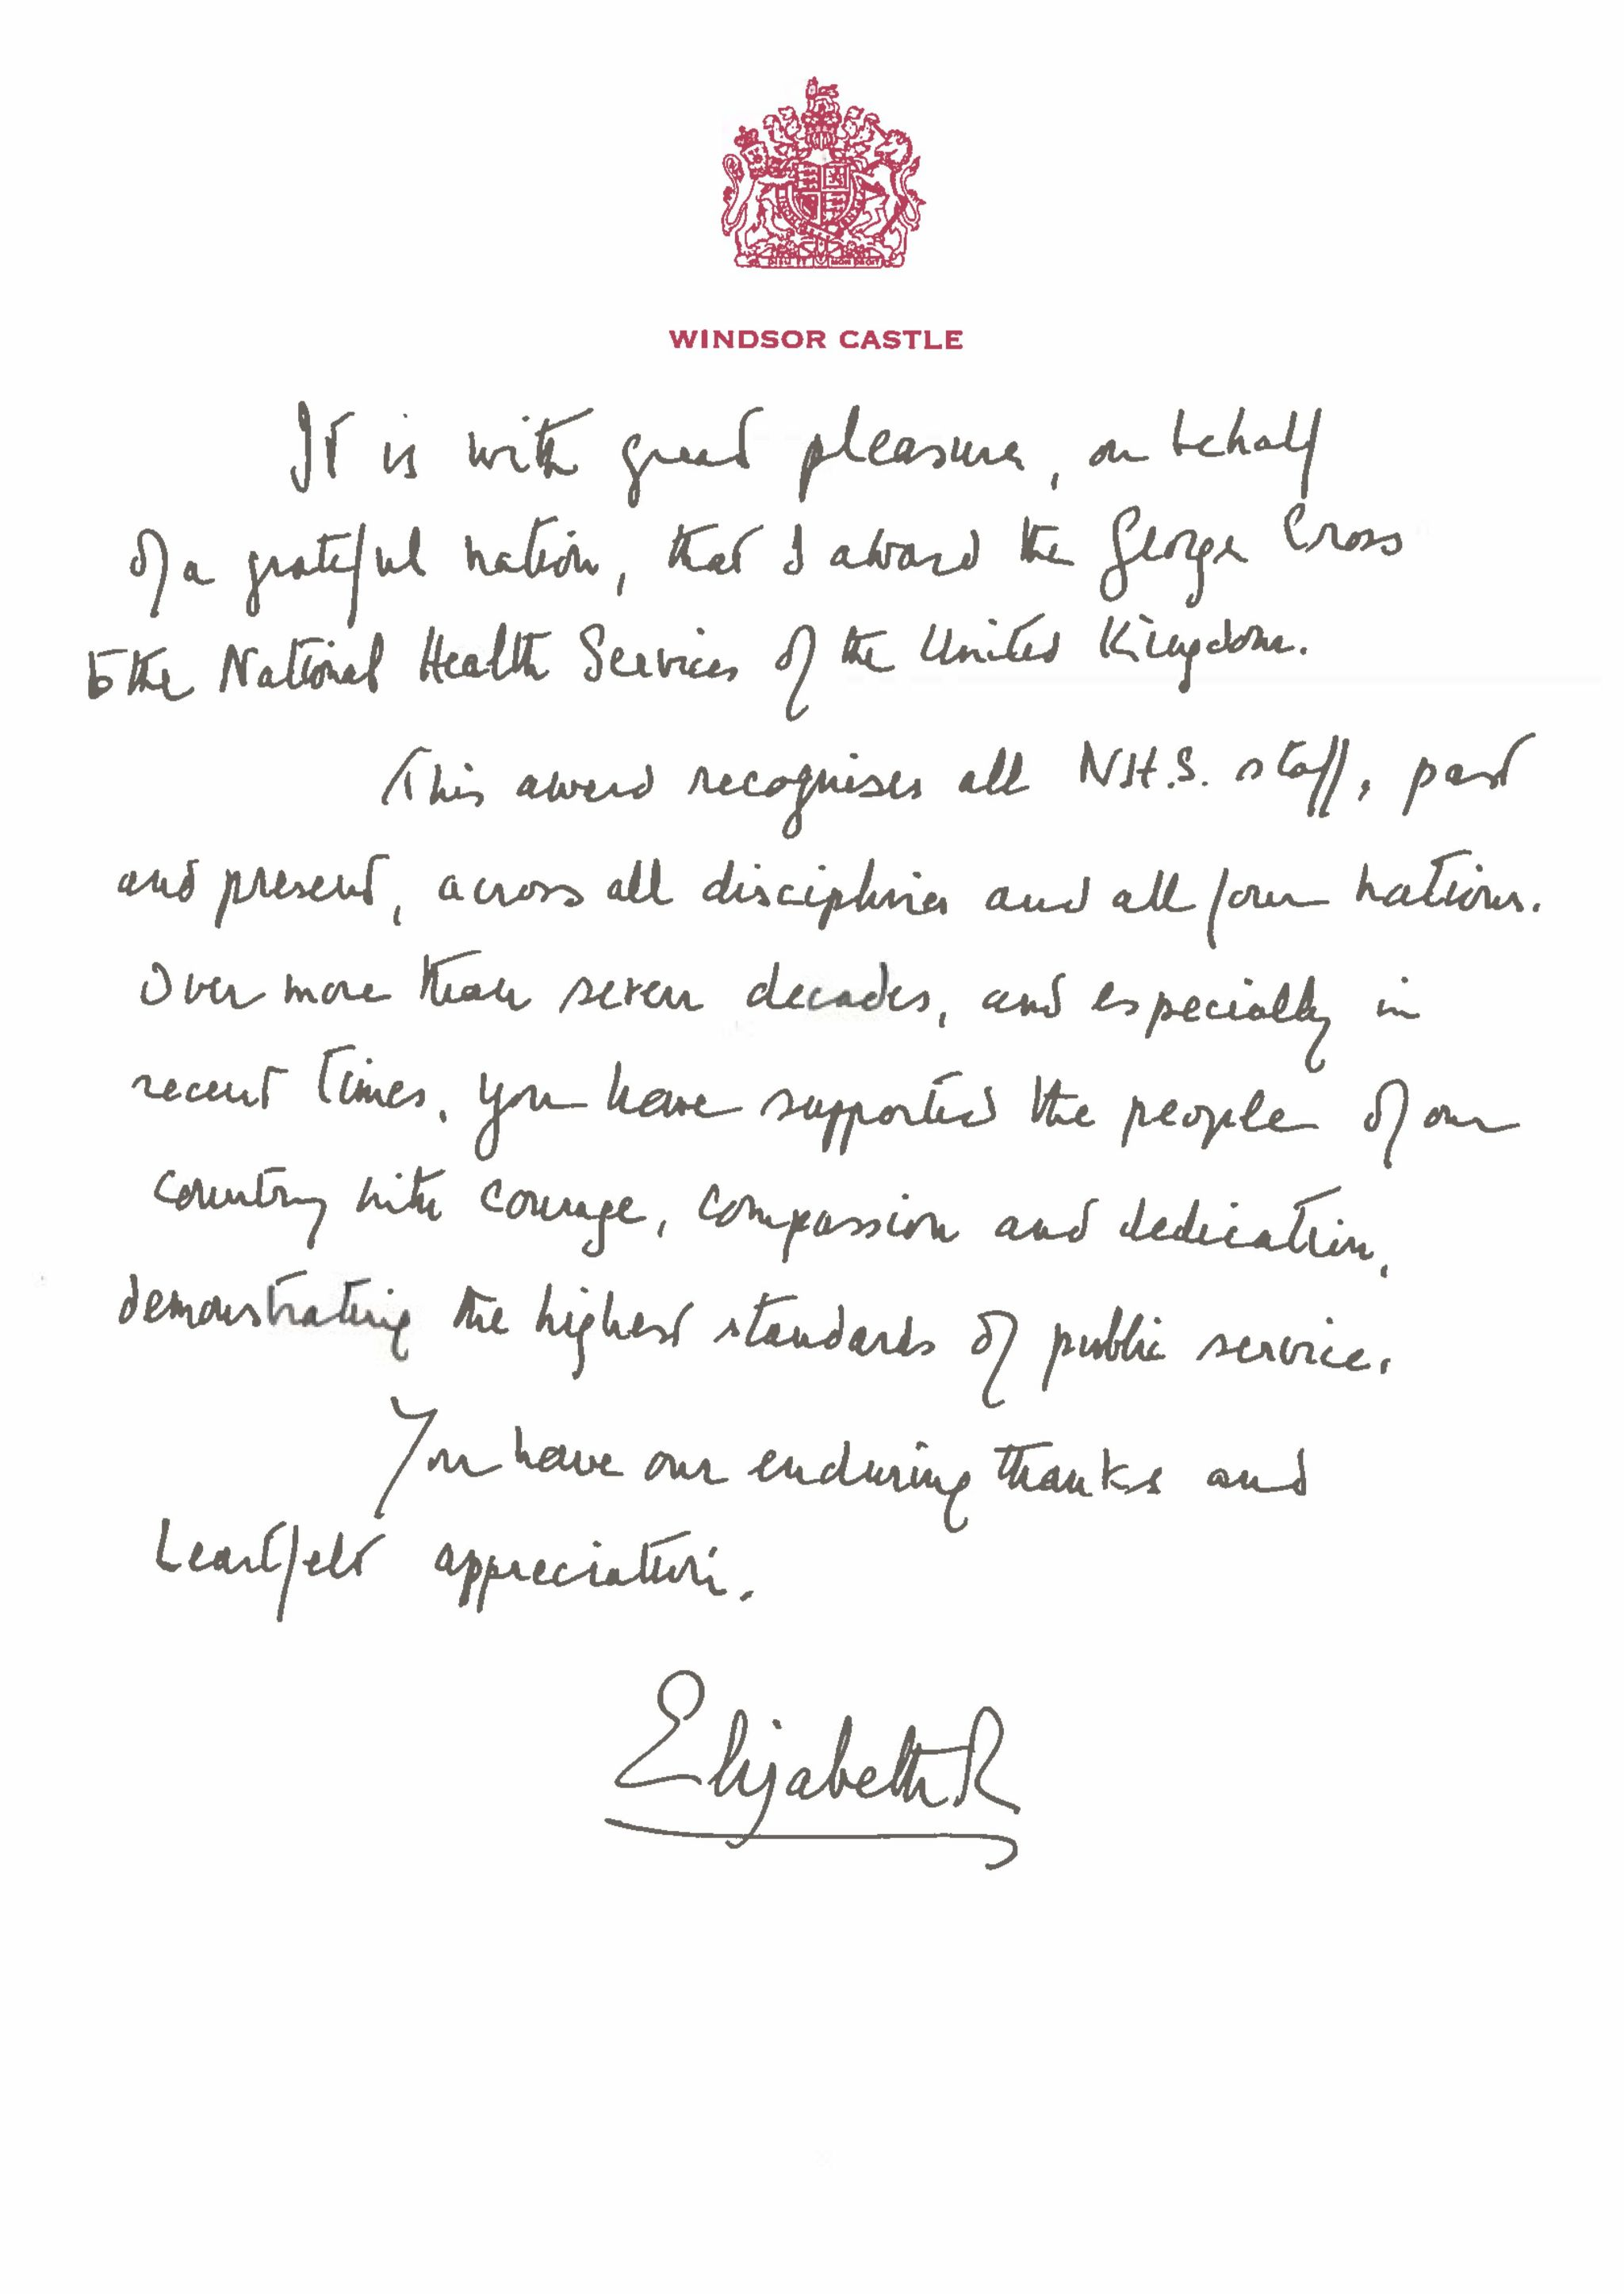 A copy of the handwritten message from Queen Elizabeth II in support of the award of the George Cross to the NHS